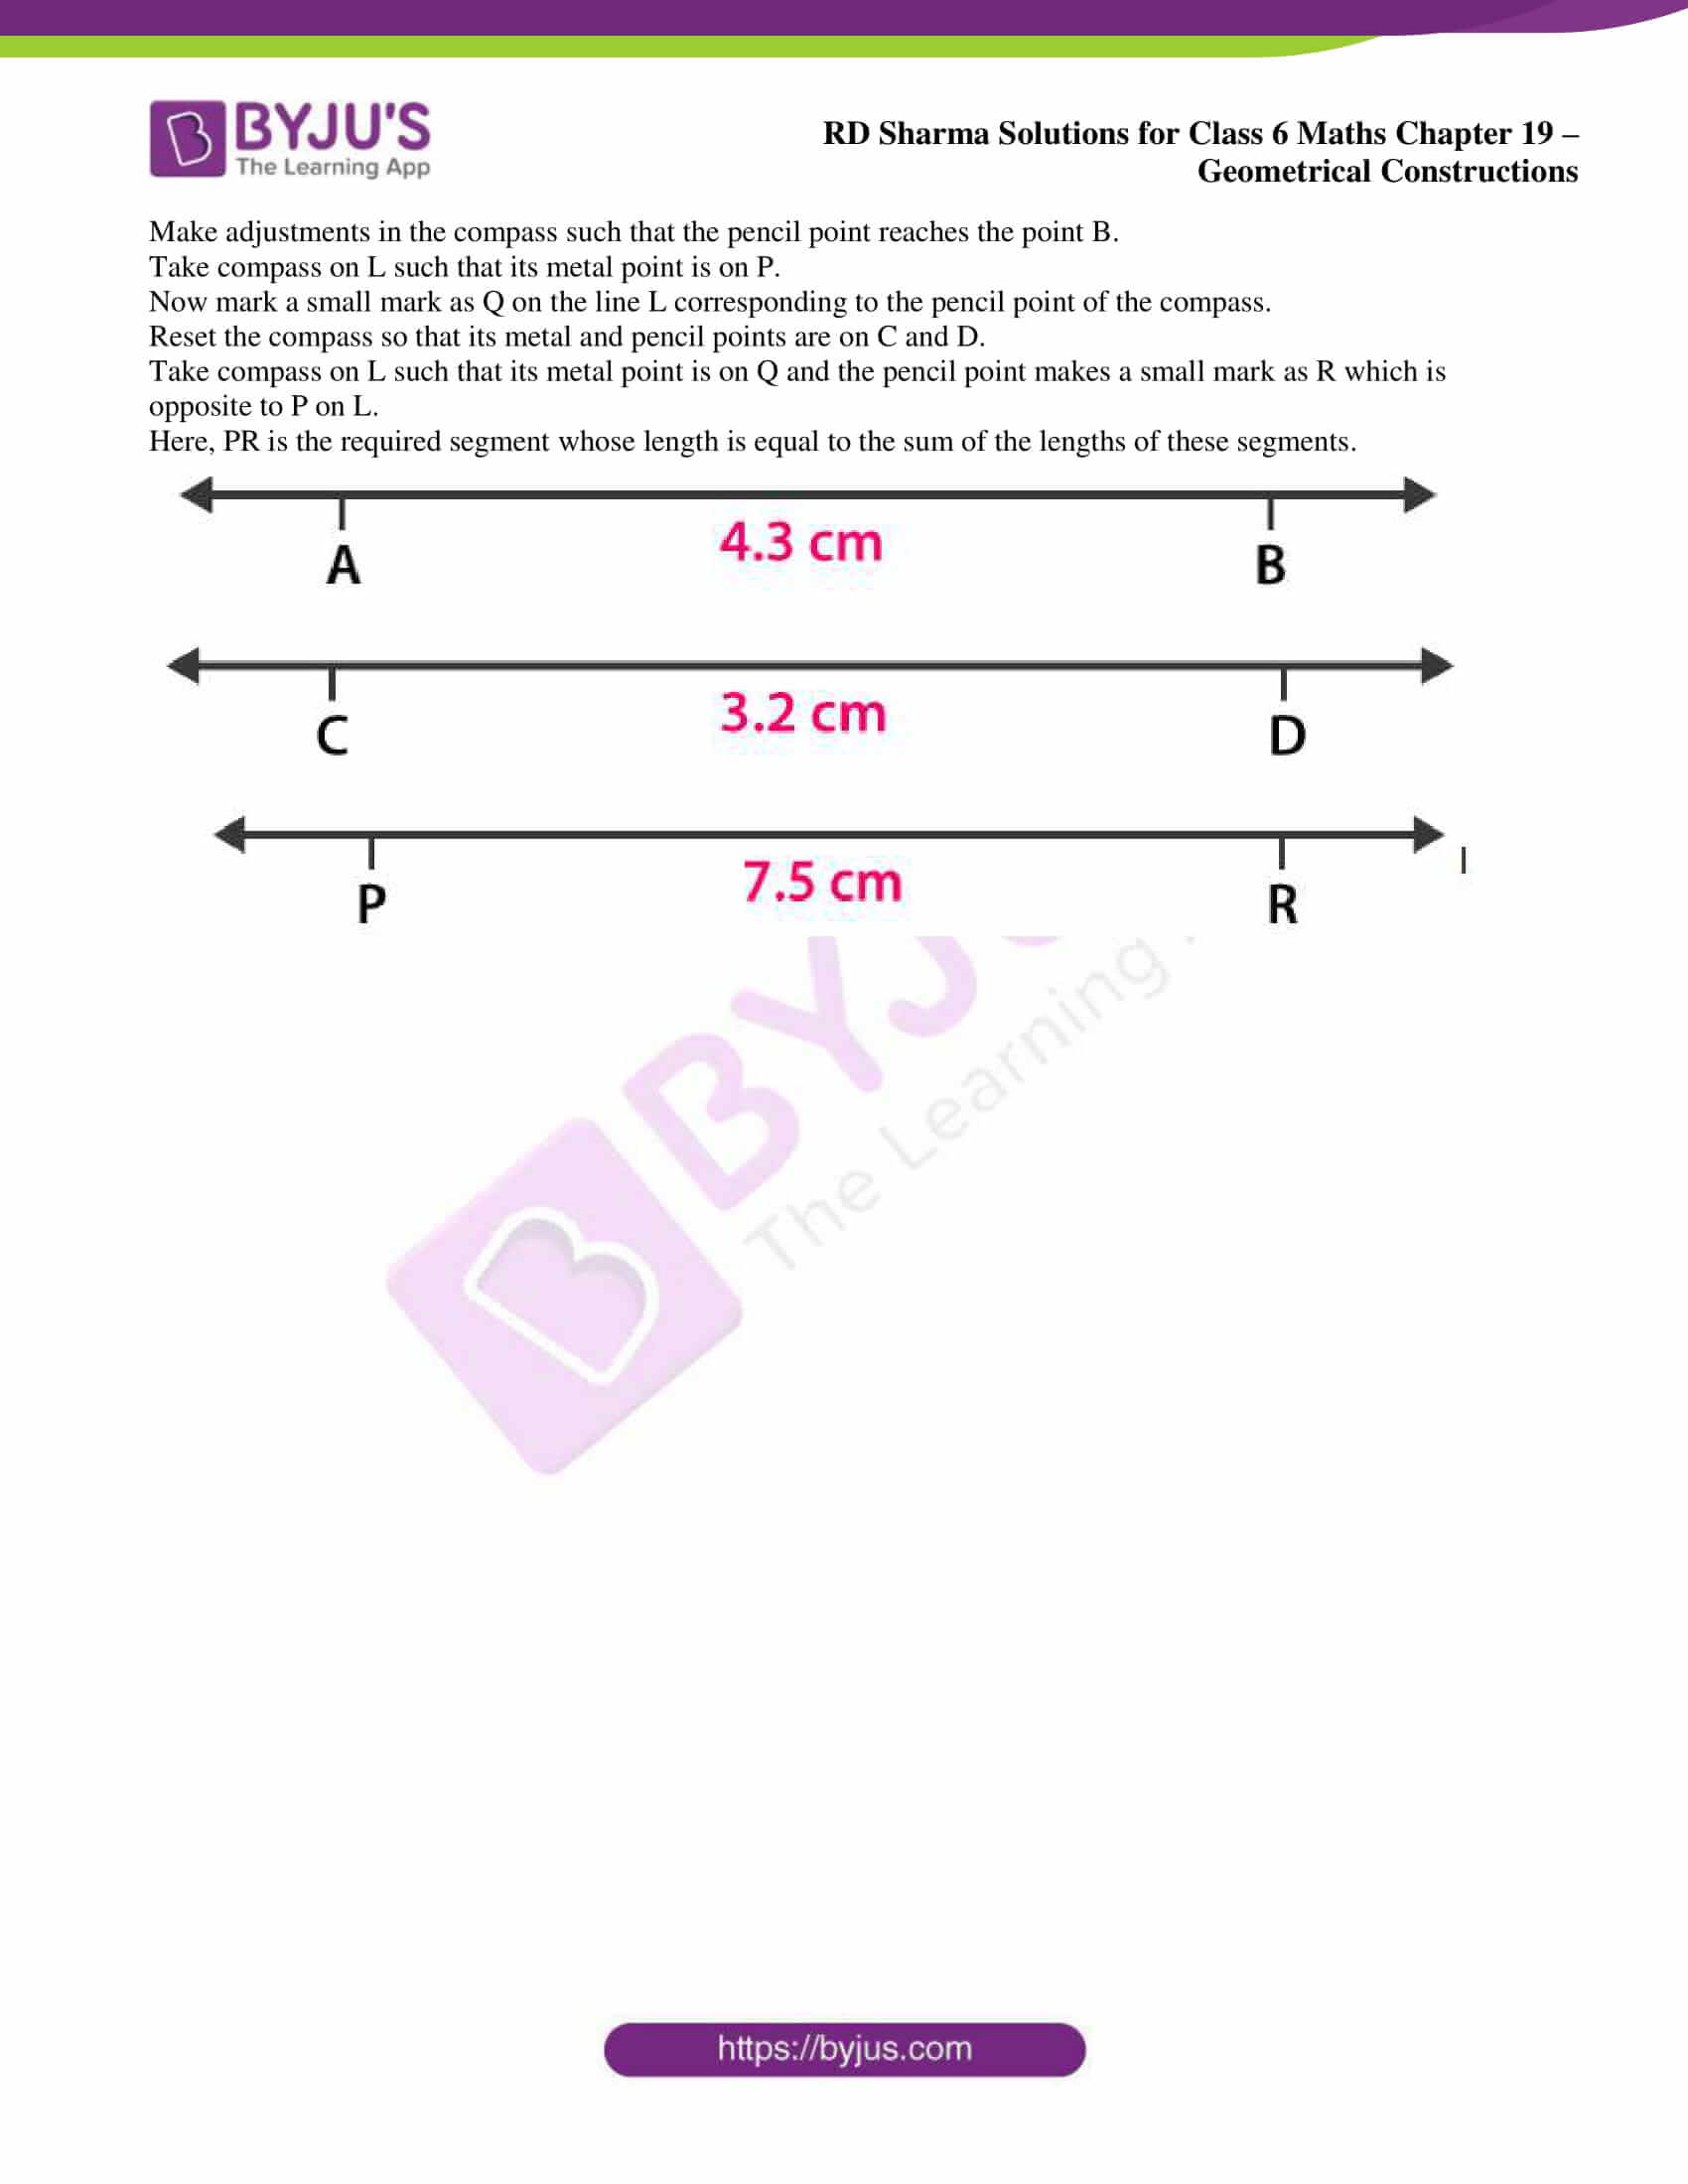 rd sharma solutions nov2020 class 6 maths chapter 19 exercise 1 2